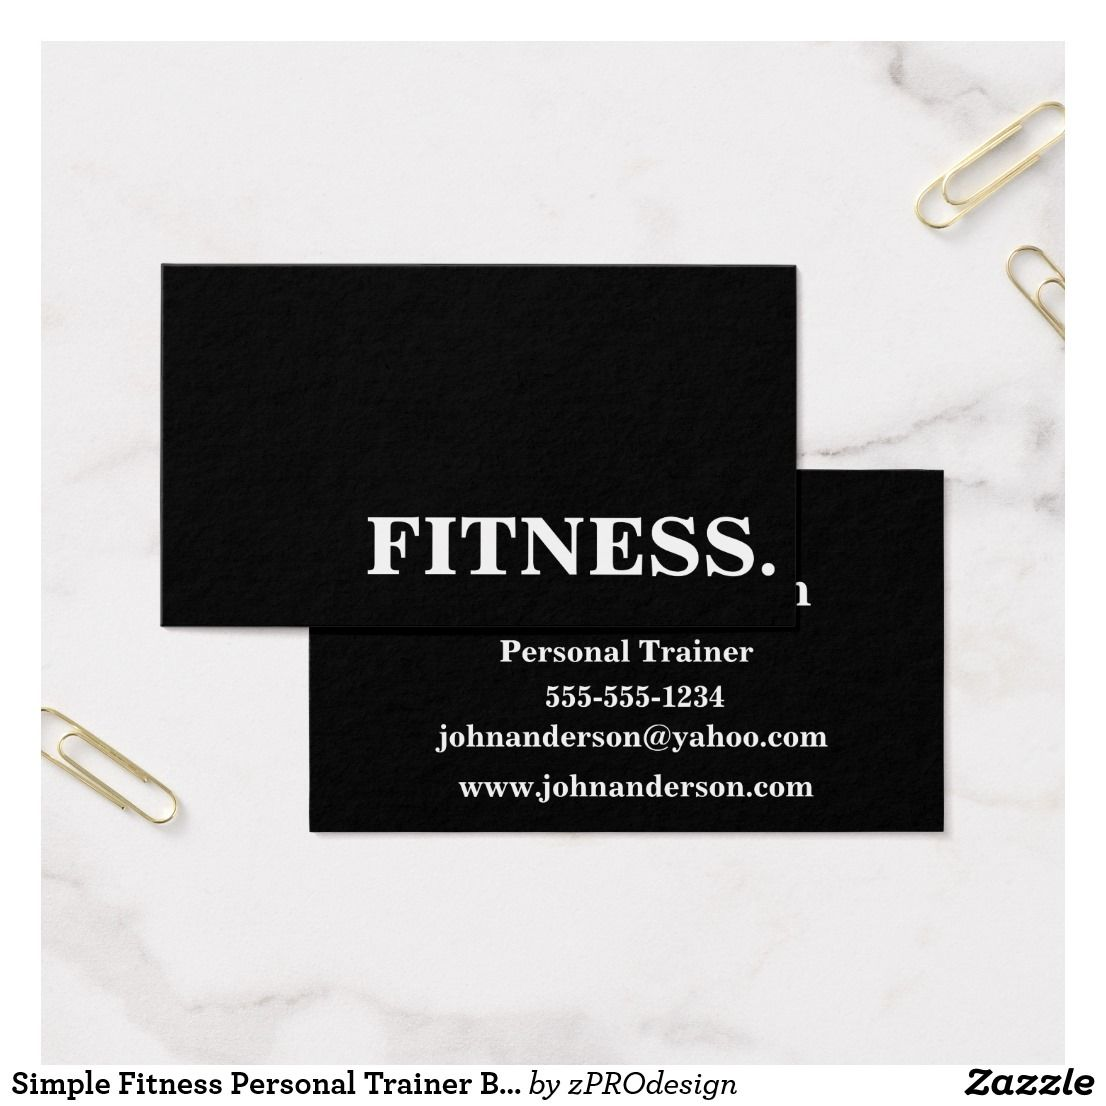 Simple Fitness Personal Trainer Business Card   Business Cards ...